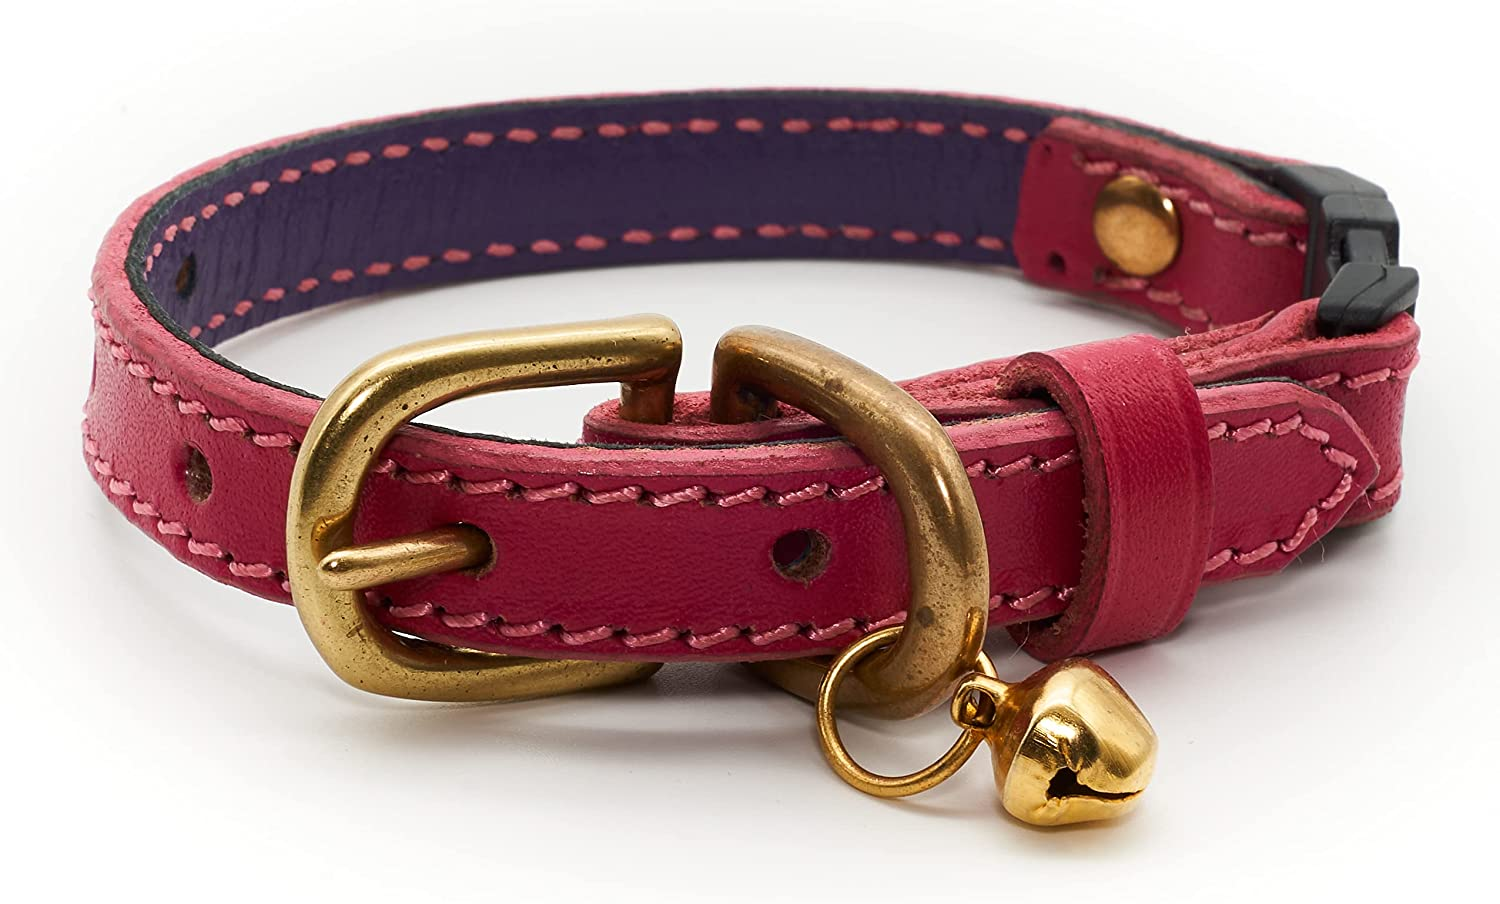 Leather Cat Max 76% OFF Quantity limited Collar – Pink Bell Kitten a with